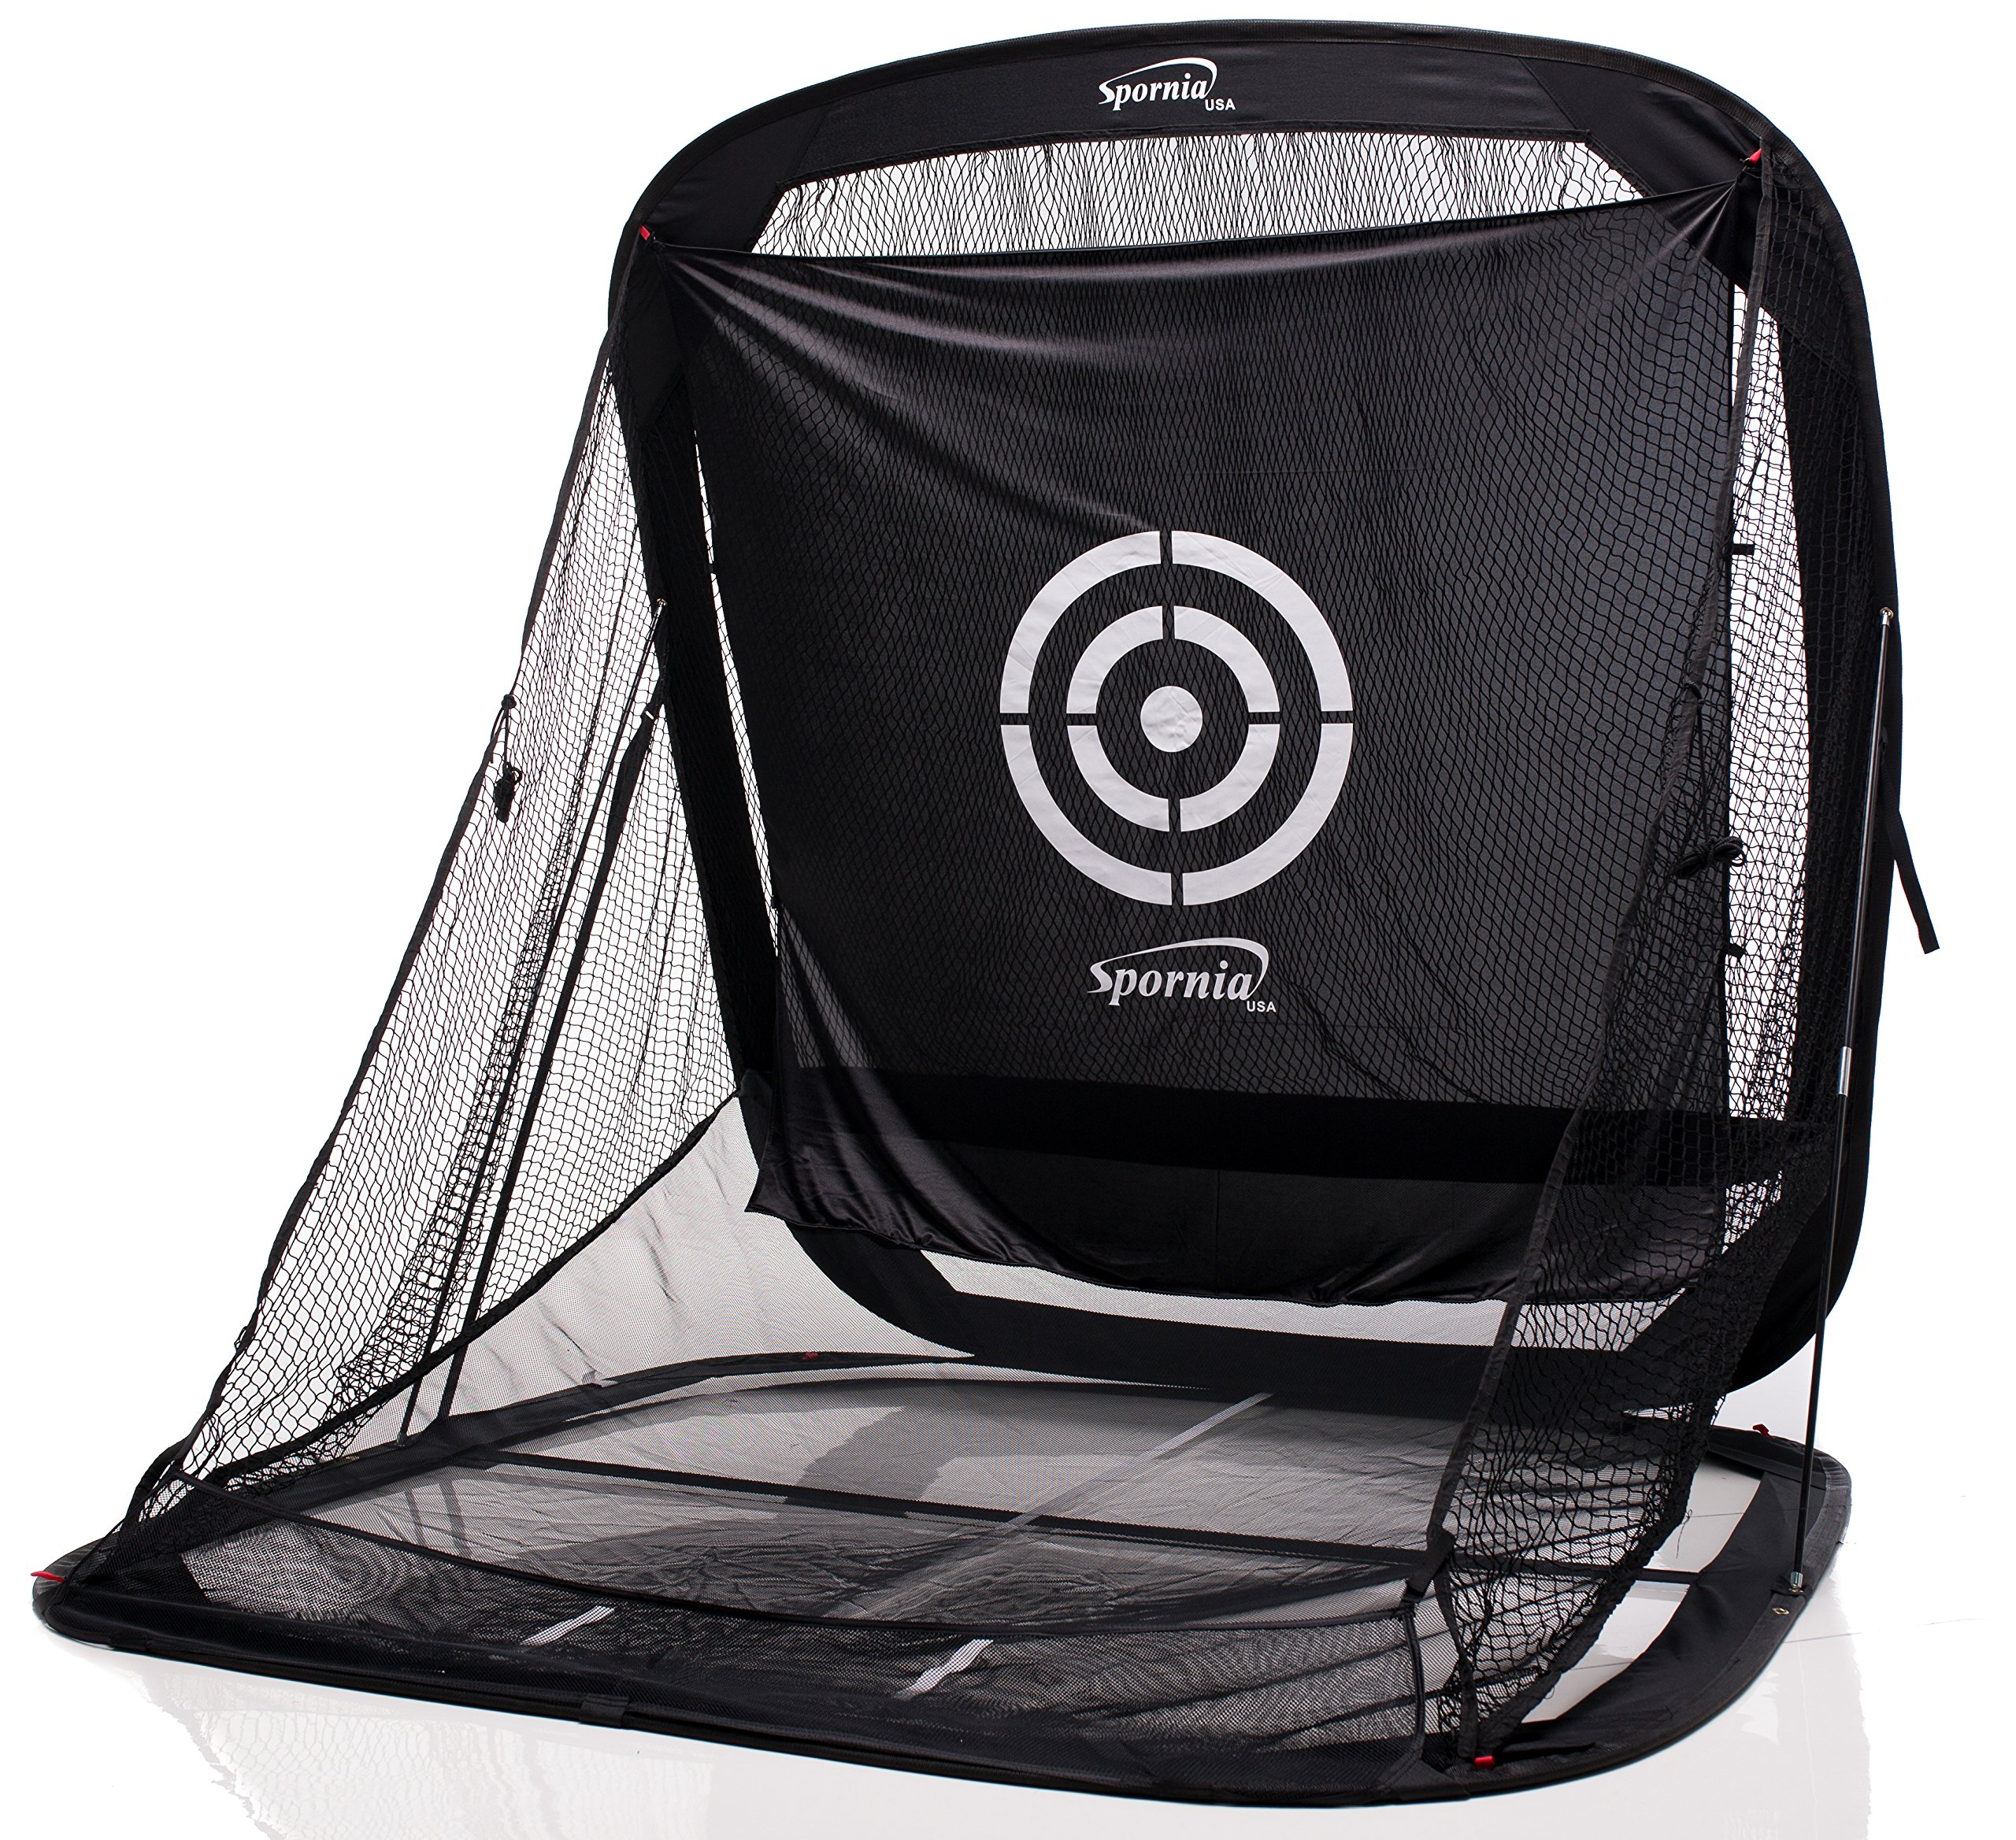 Spornia SPG-5 Golf Practice Net- Automatic Ball Return System with Target sheet, Two Side Barrier, and Chipping Target by Spornia (Image #3)